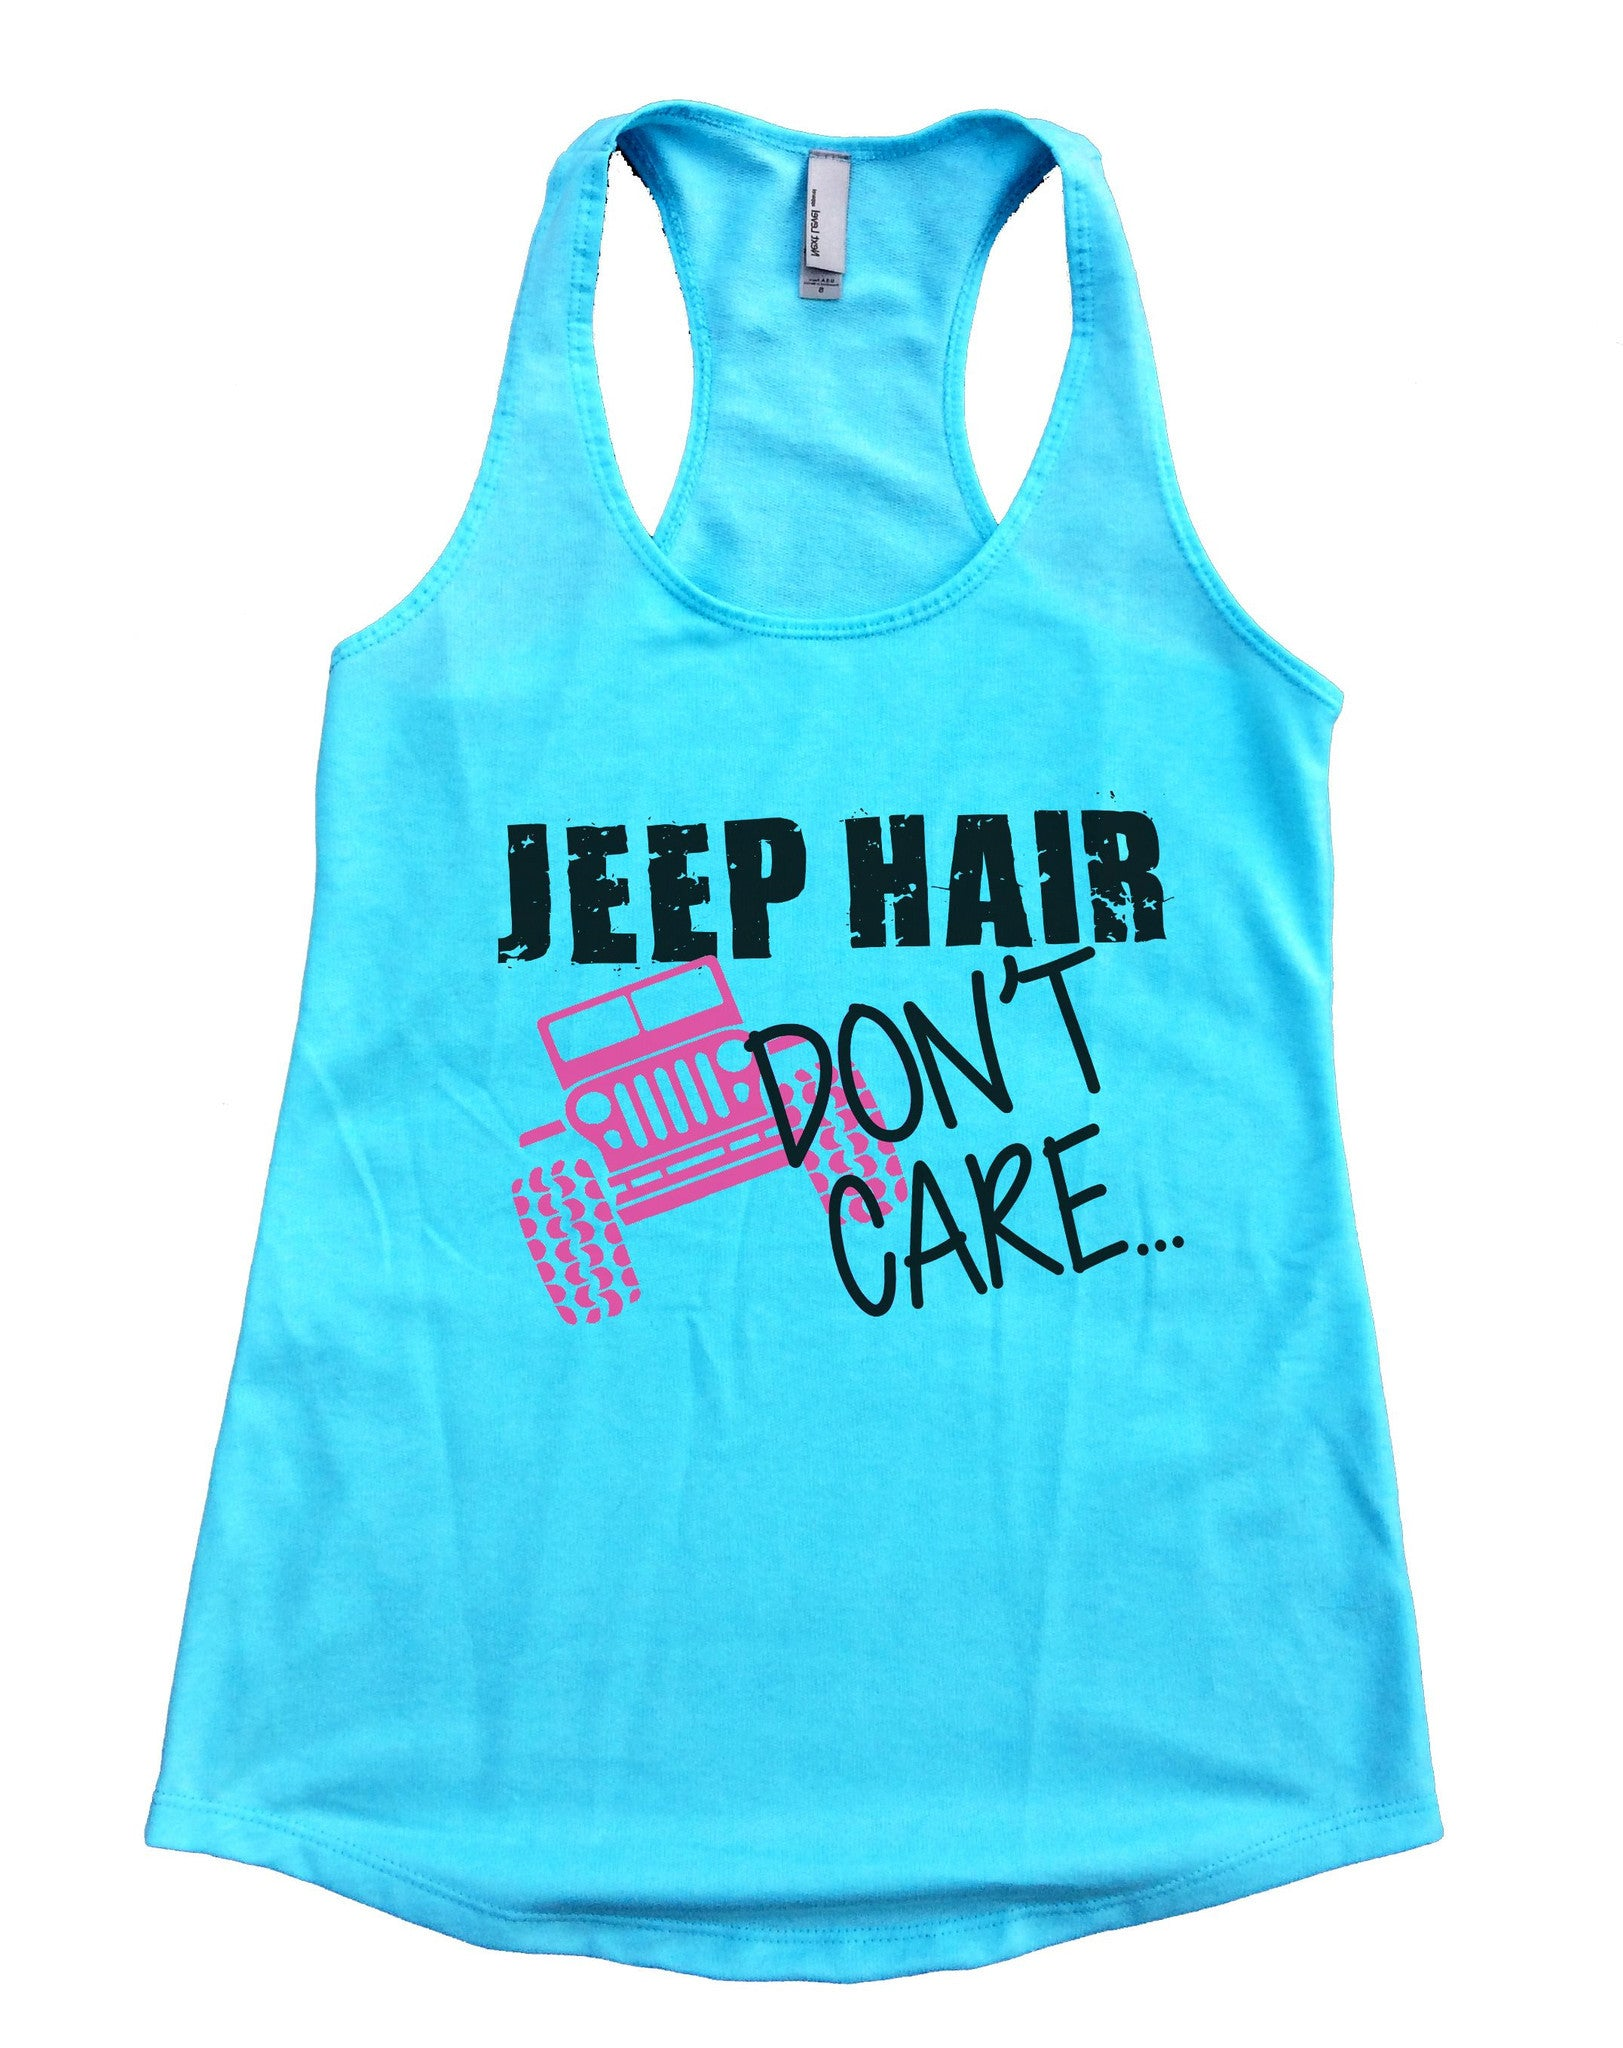 Jeep Hair Dont Care Womens Workout Tank Top F729 - Funny Shirts Tank Tops Burnouts and Triblends  - 1